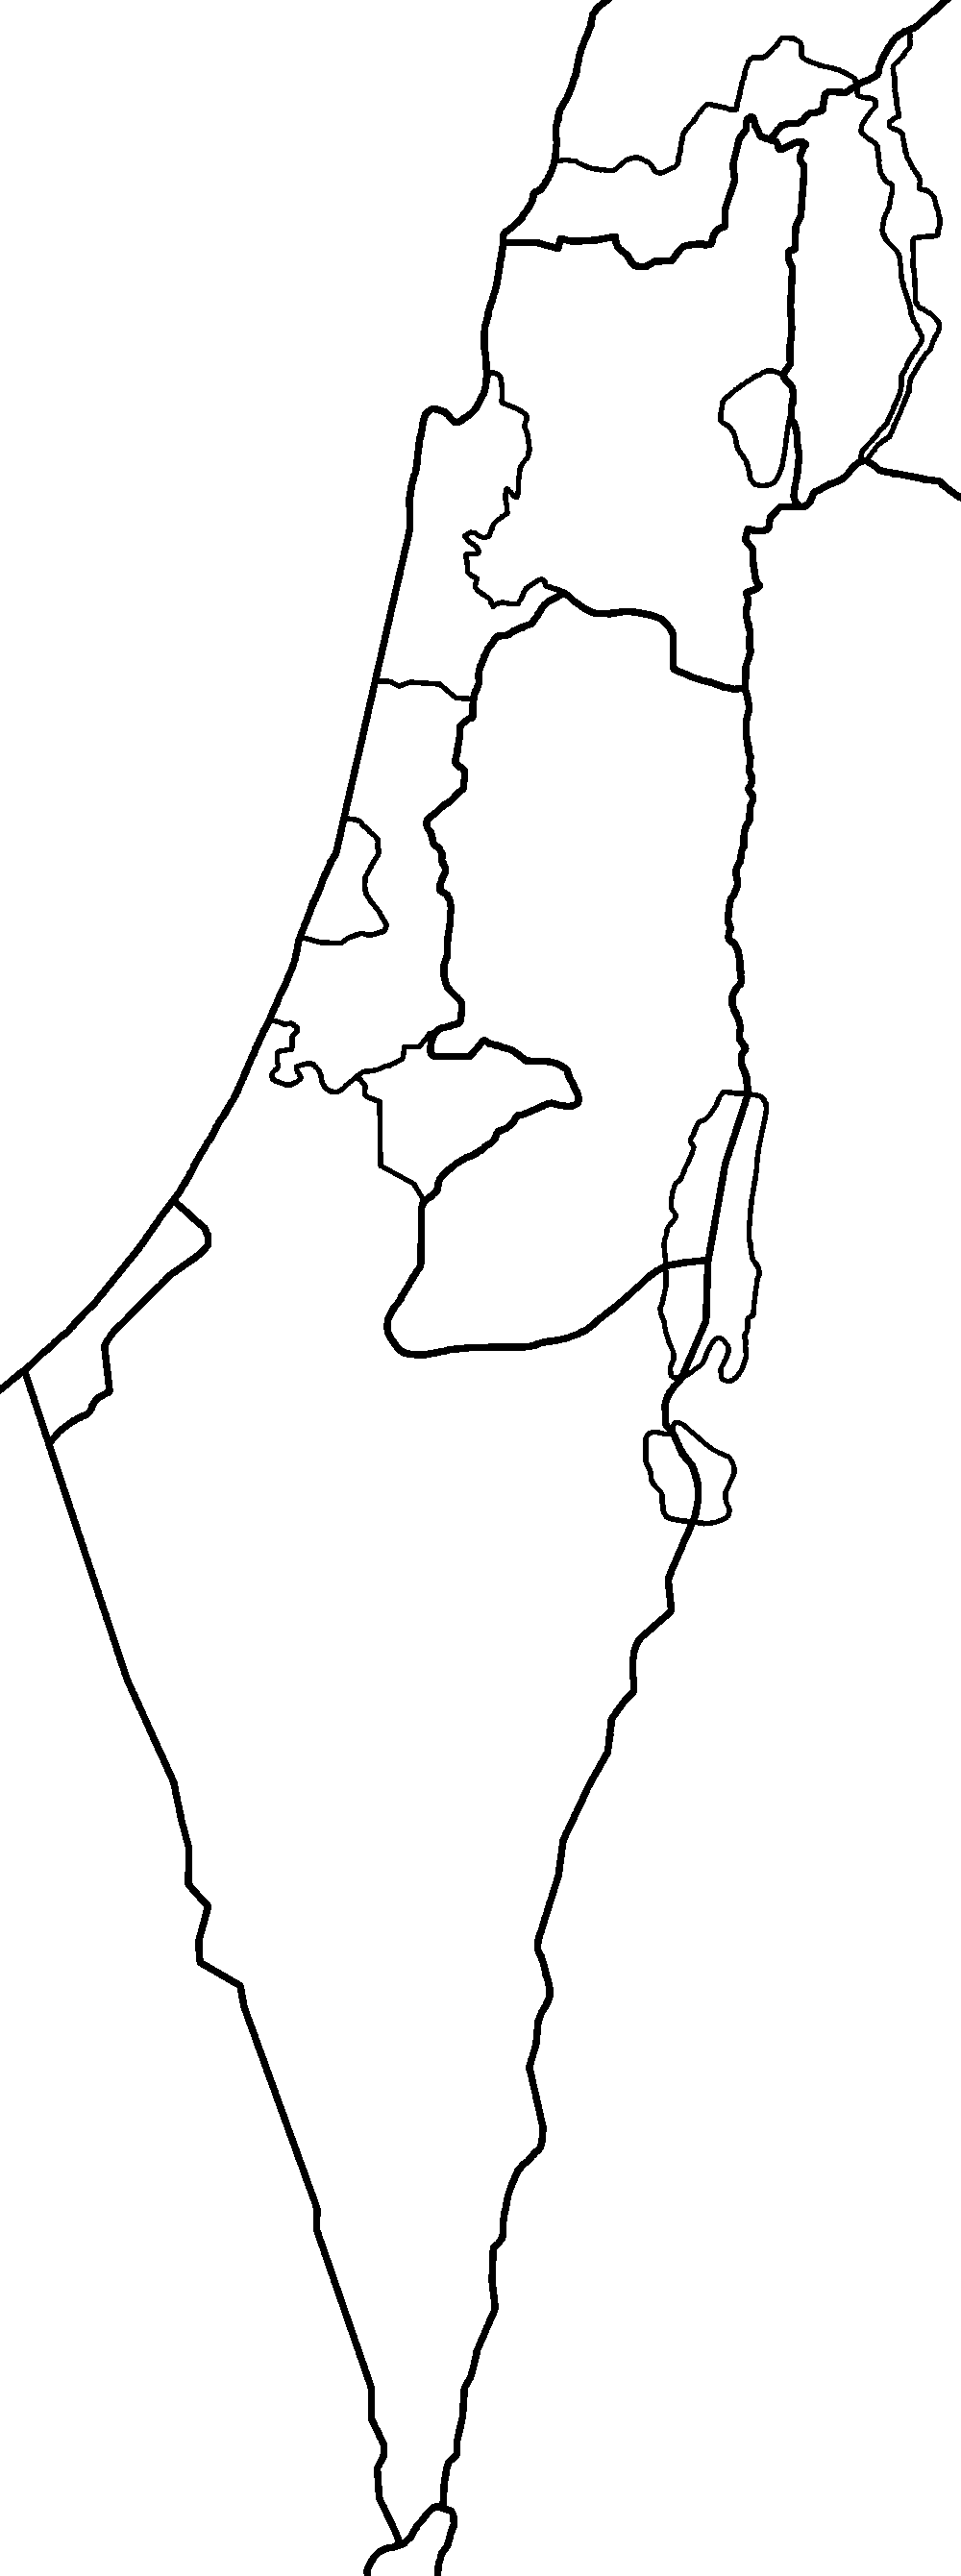 Israel_districts_blank.png